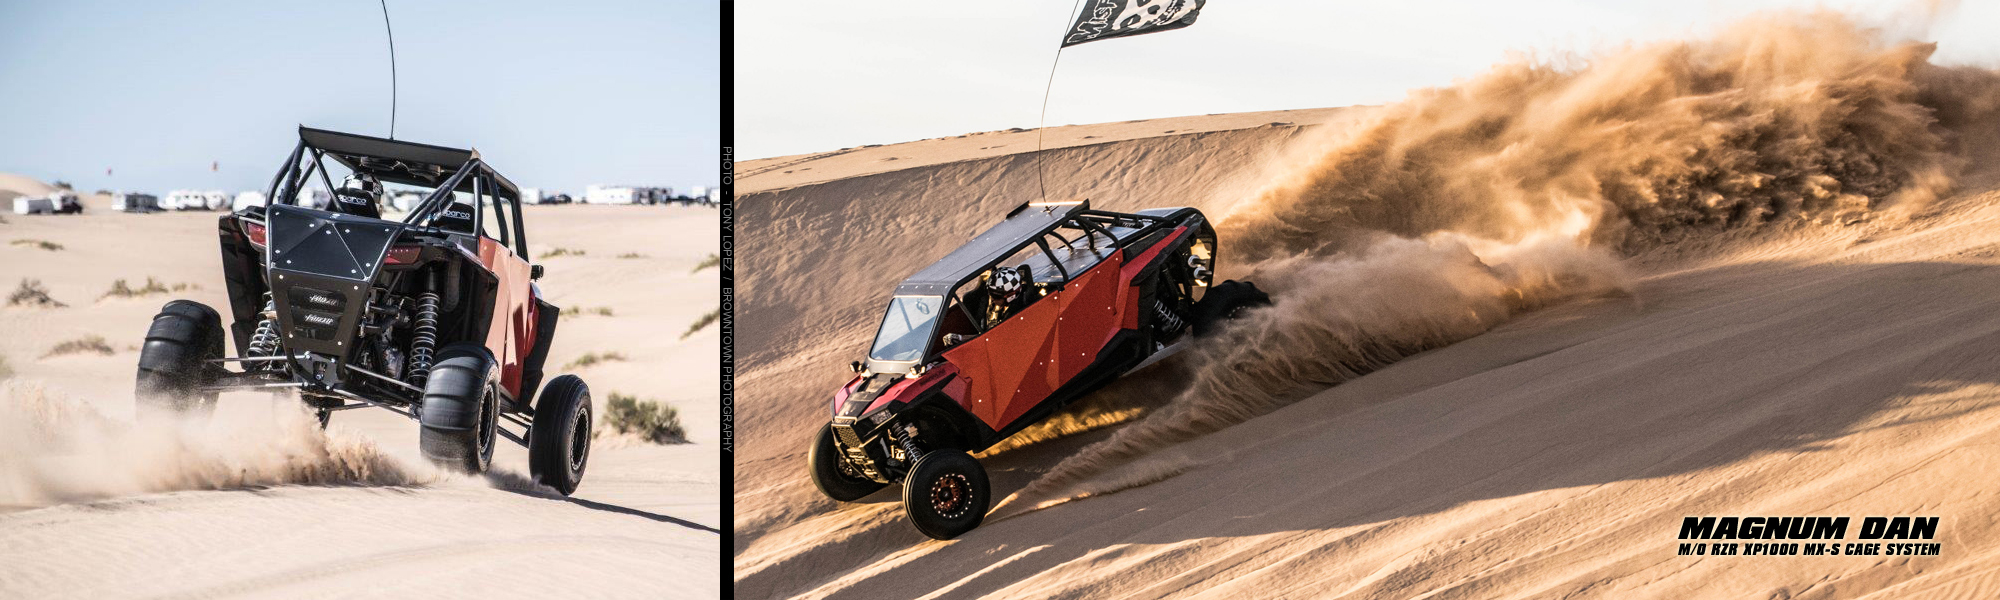 Magnum Offroad Polaris RZR XP 1000 MSX Roll Cage System